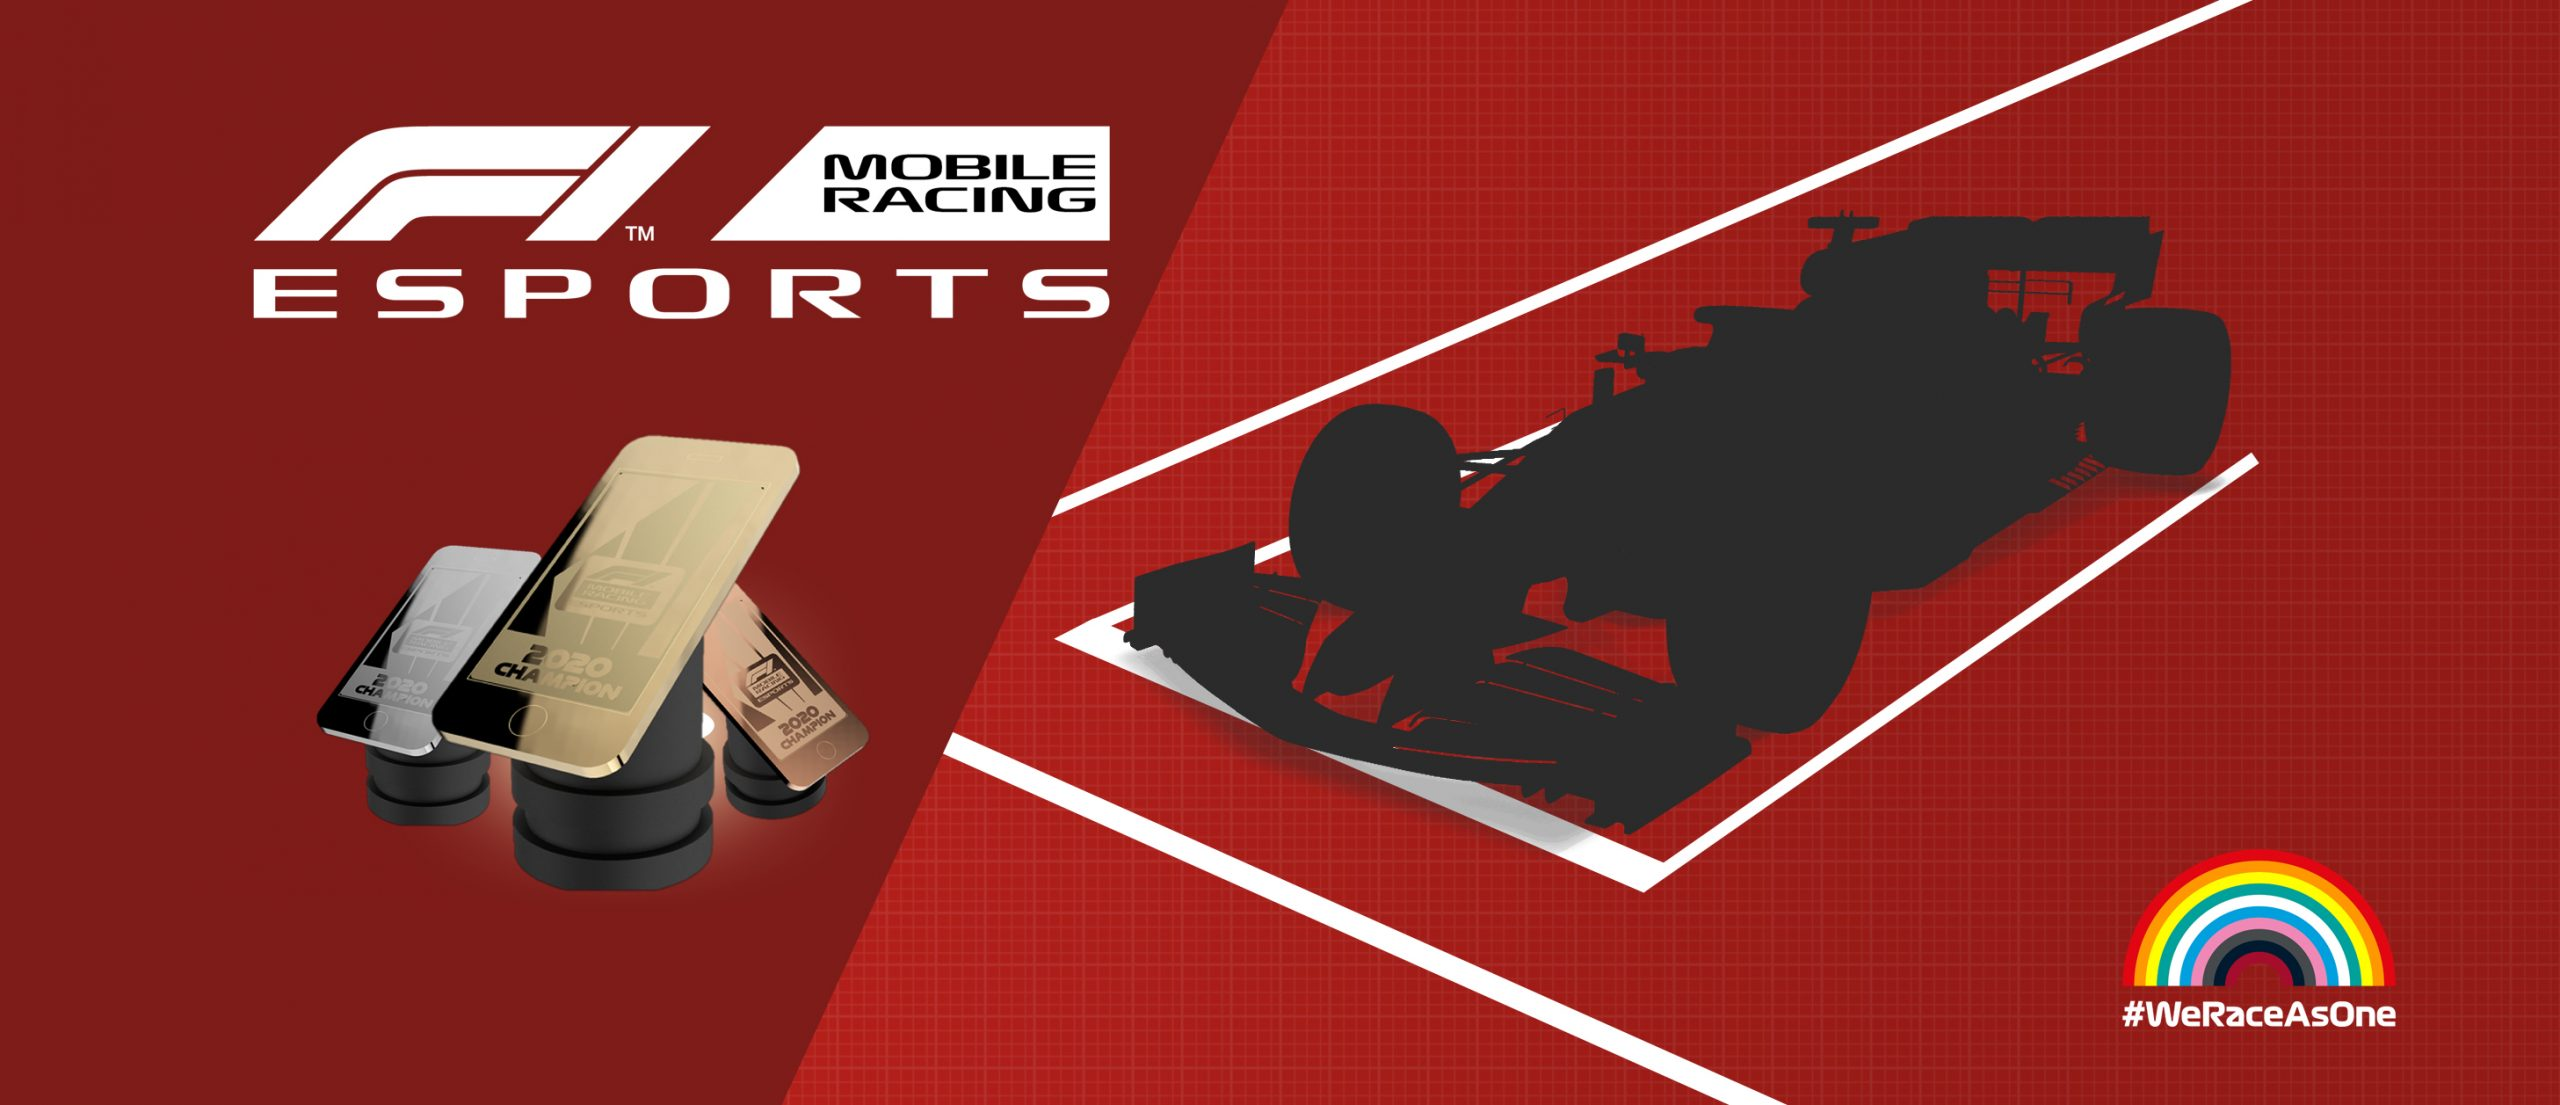 F1 Mobile Racing Esports Finals Format Revealed